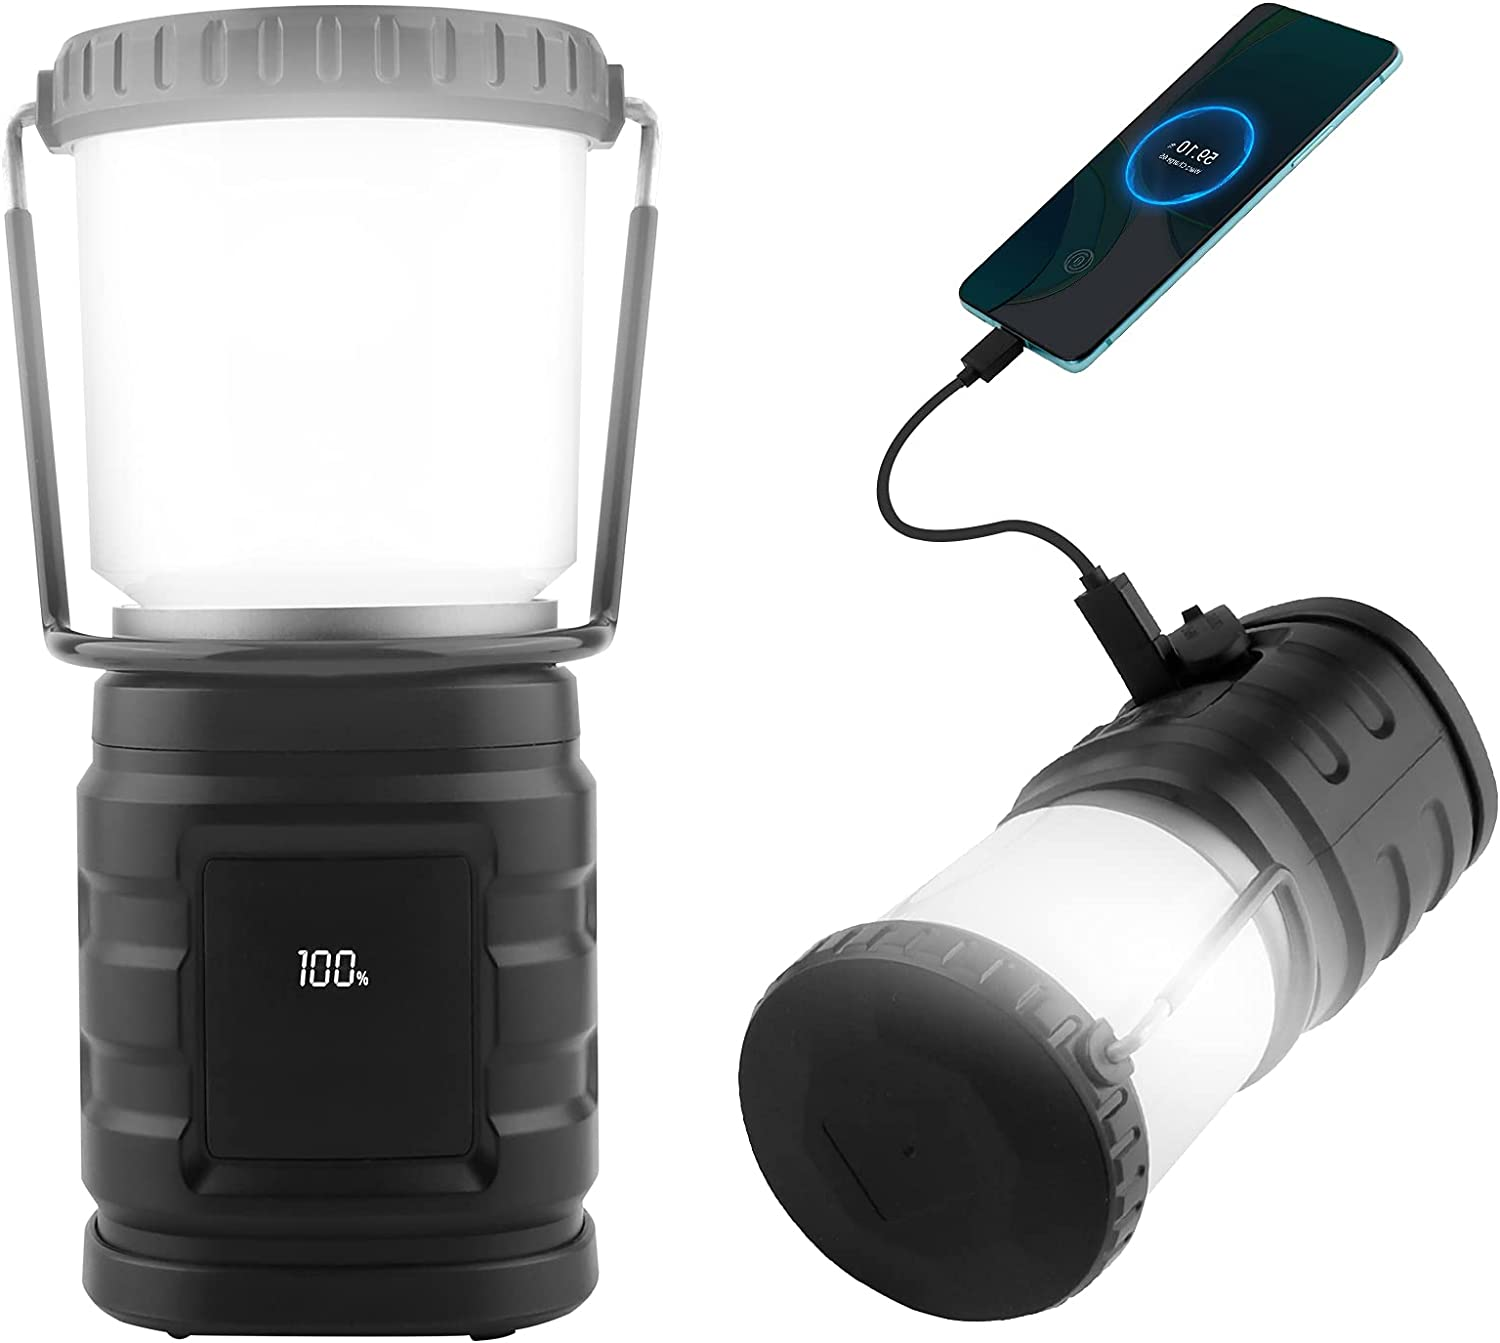 Translated DeBizz Superior 360 LED Camping Lantern Light Rechargeable Bright Super